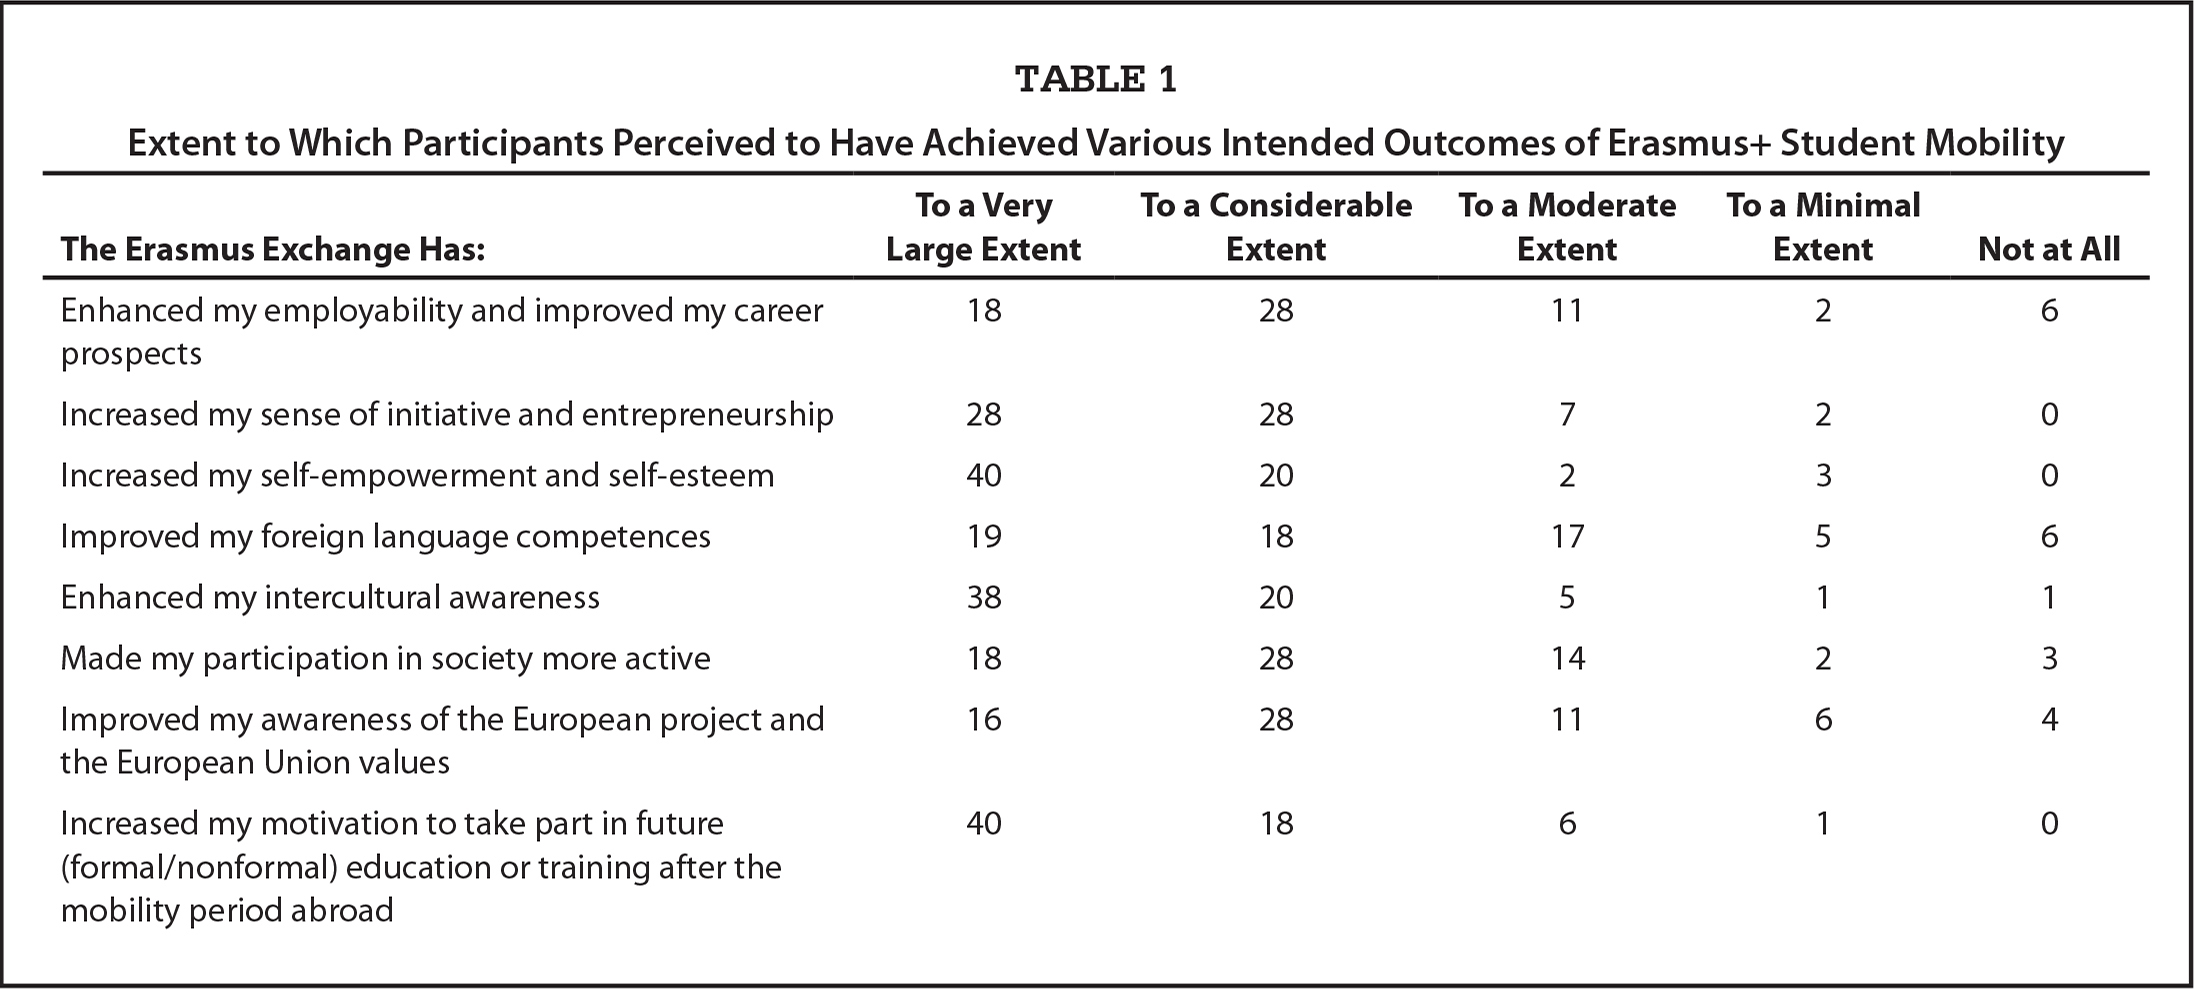 Extent to Which Participants Perceived to Have Achieved Various Intended Outcomes of Erasmus+ Student Mobility